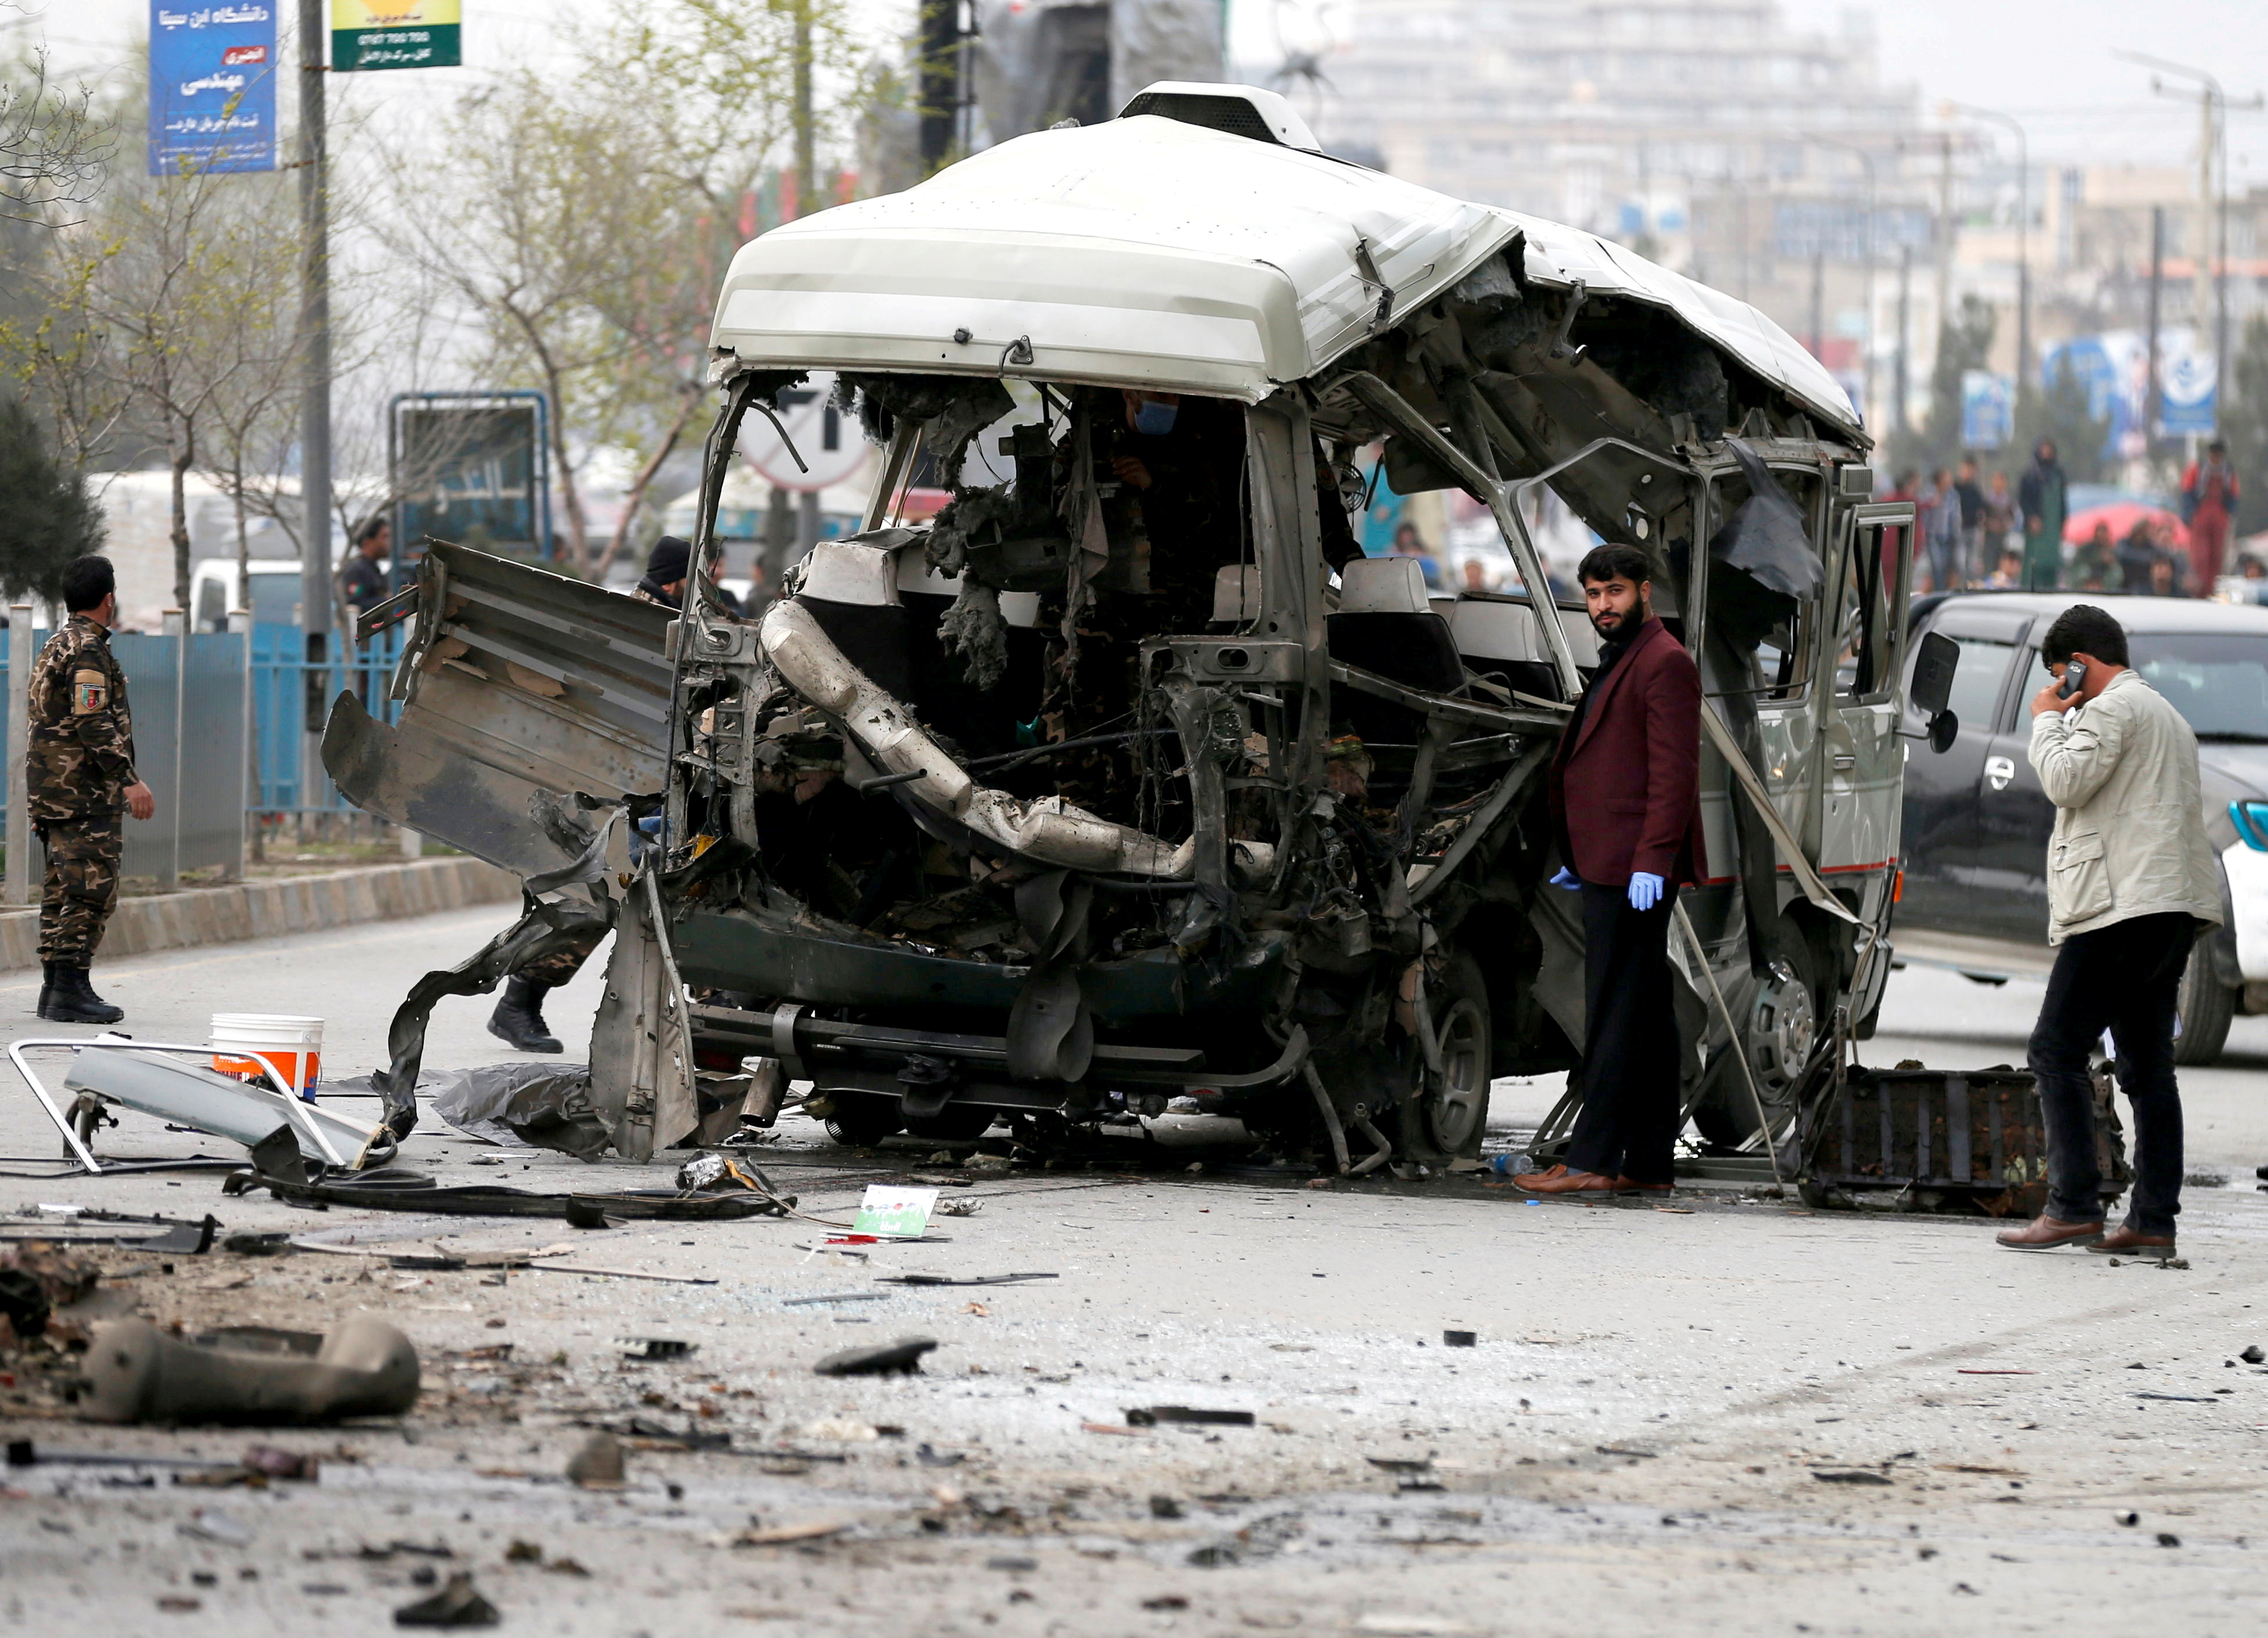 Afghan officials inspect a damaged minibus after a blast in Kabul, Afghanistan March 15, 2021. REUTERS/Mohammad Ismail/File Photo/File Photo